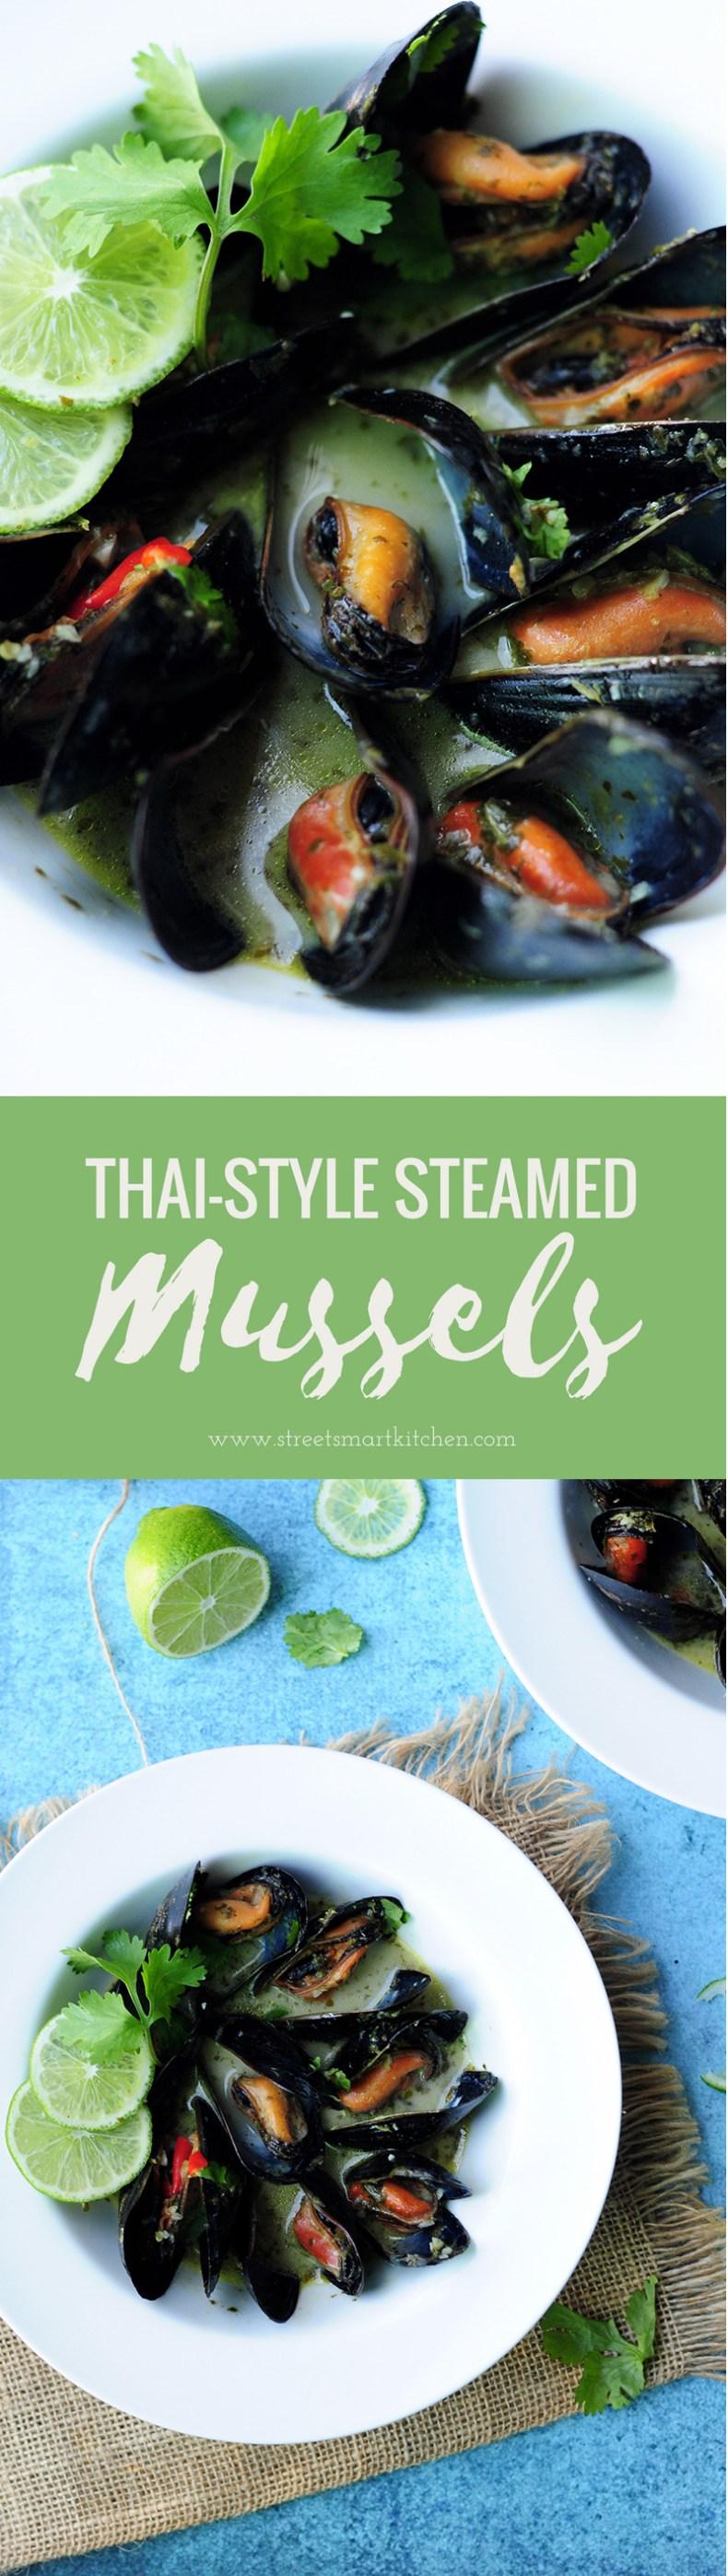 Quick and delicious mussels steamed in white wine along with a spicy and creamy Thai-style cooking sauce.